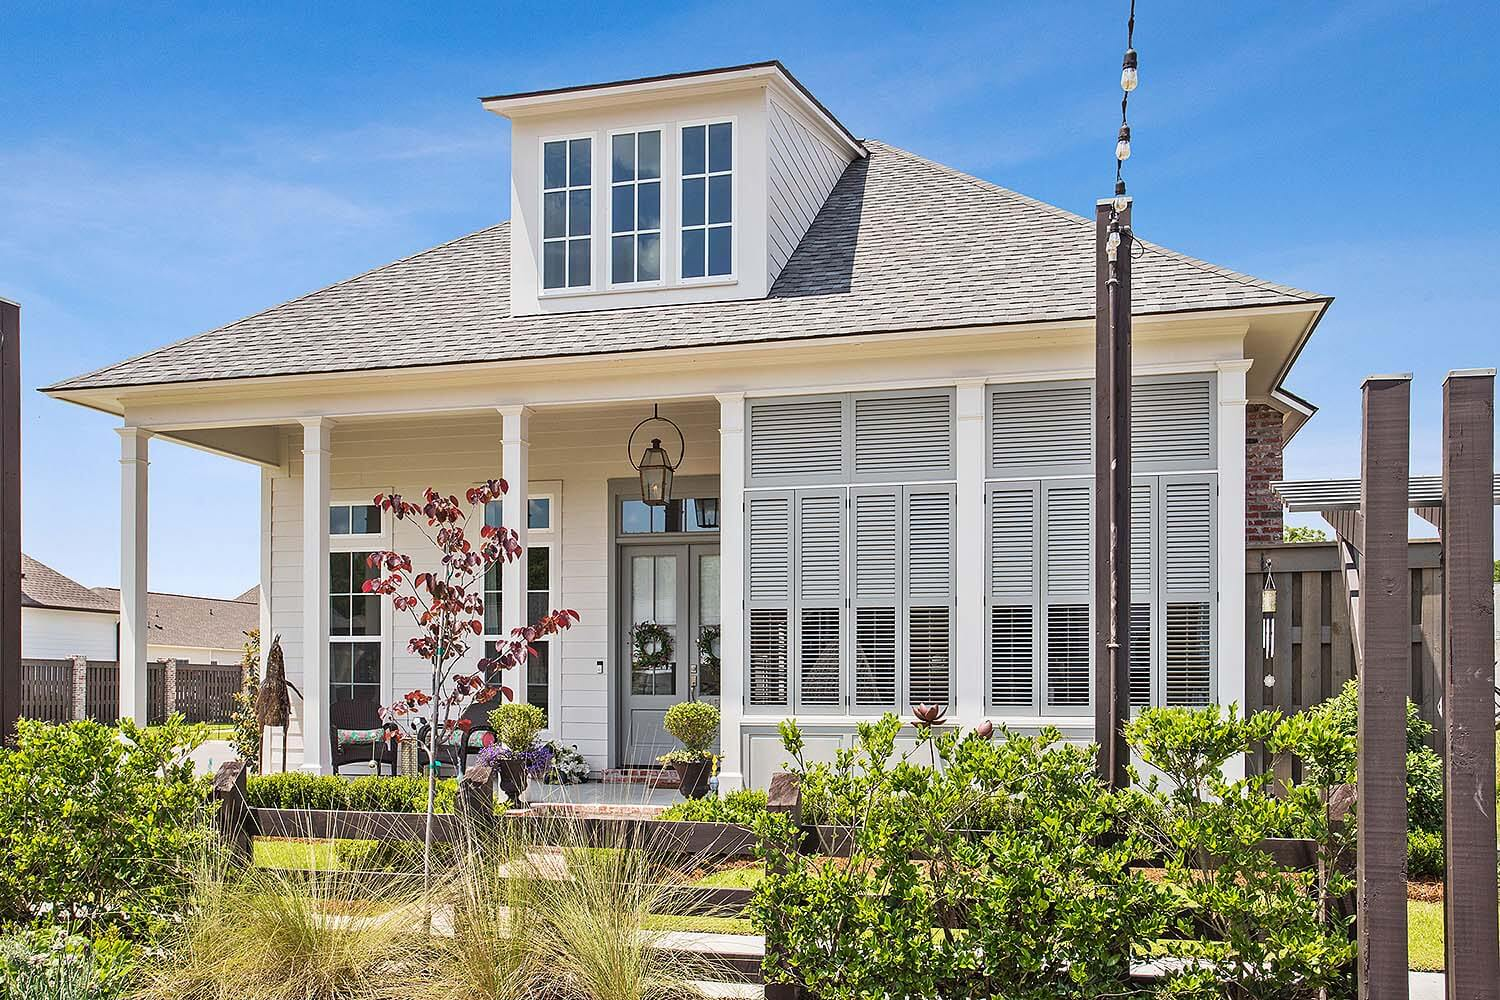 About Dupree Construction in Baton Rouge, LA